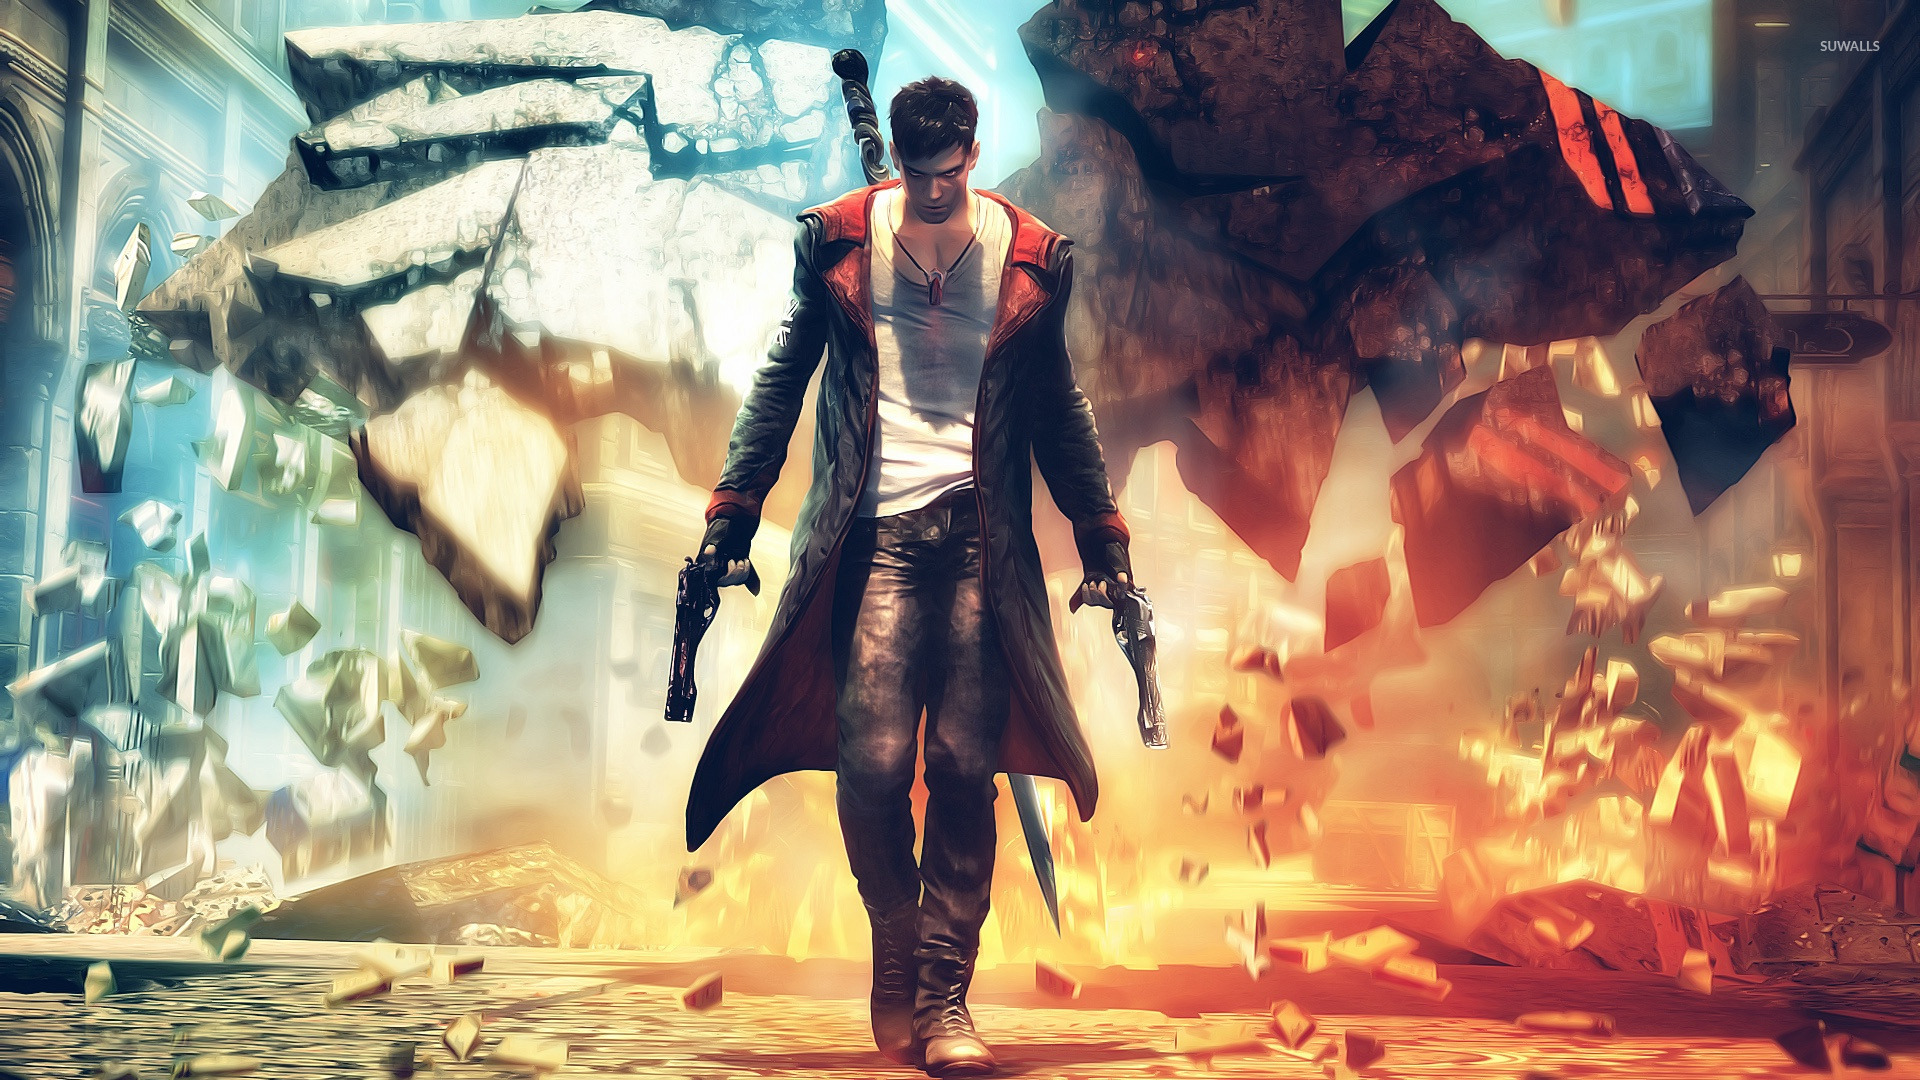 Dante   Devil May Cry 5 wallpaper   Game wallpapers   15652 1680x1050